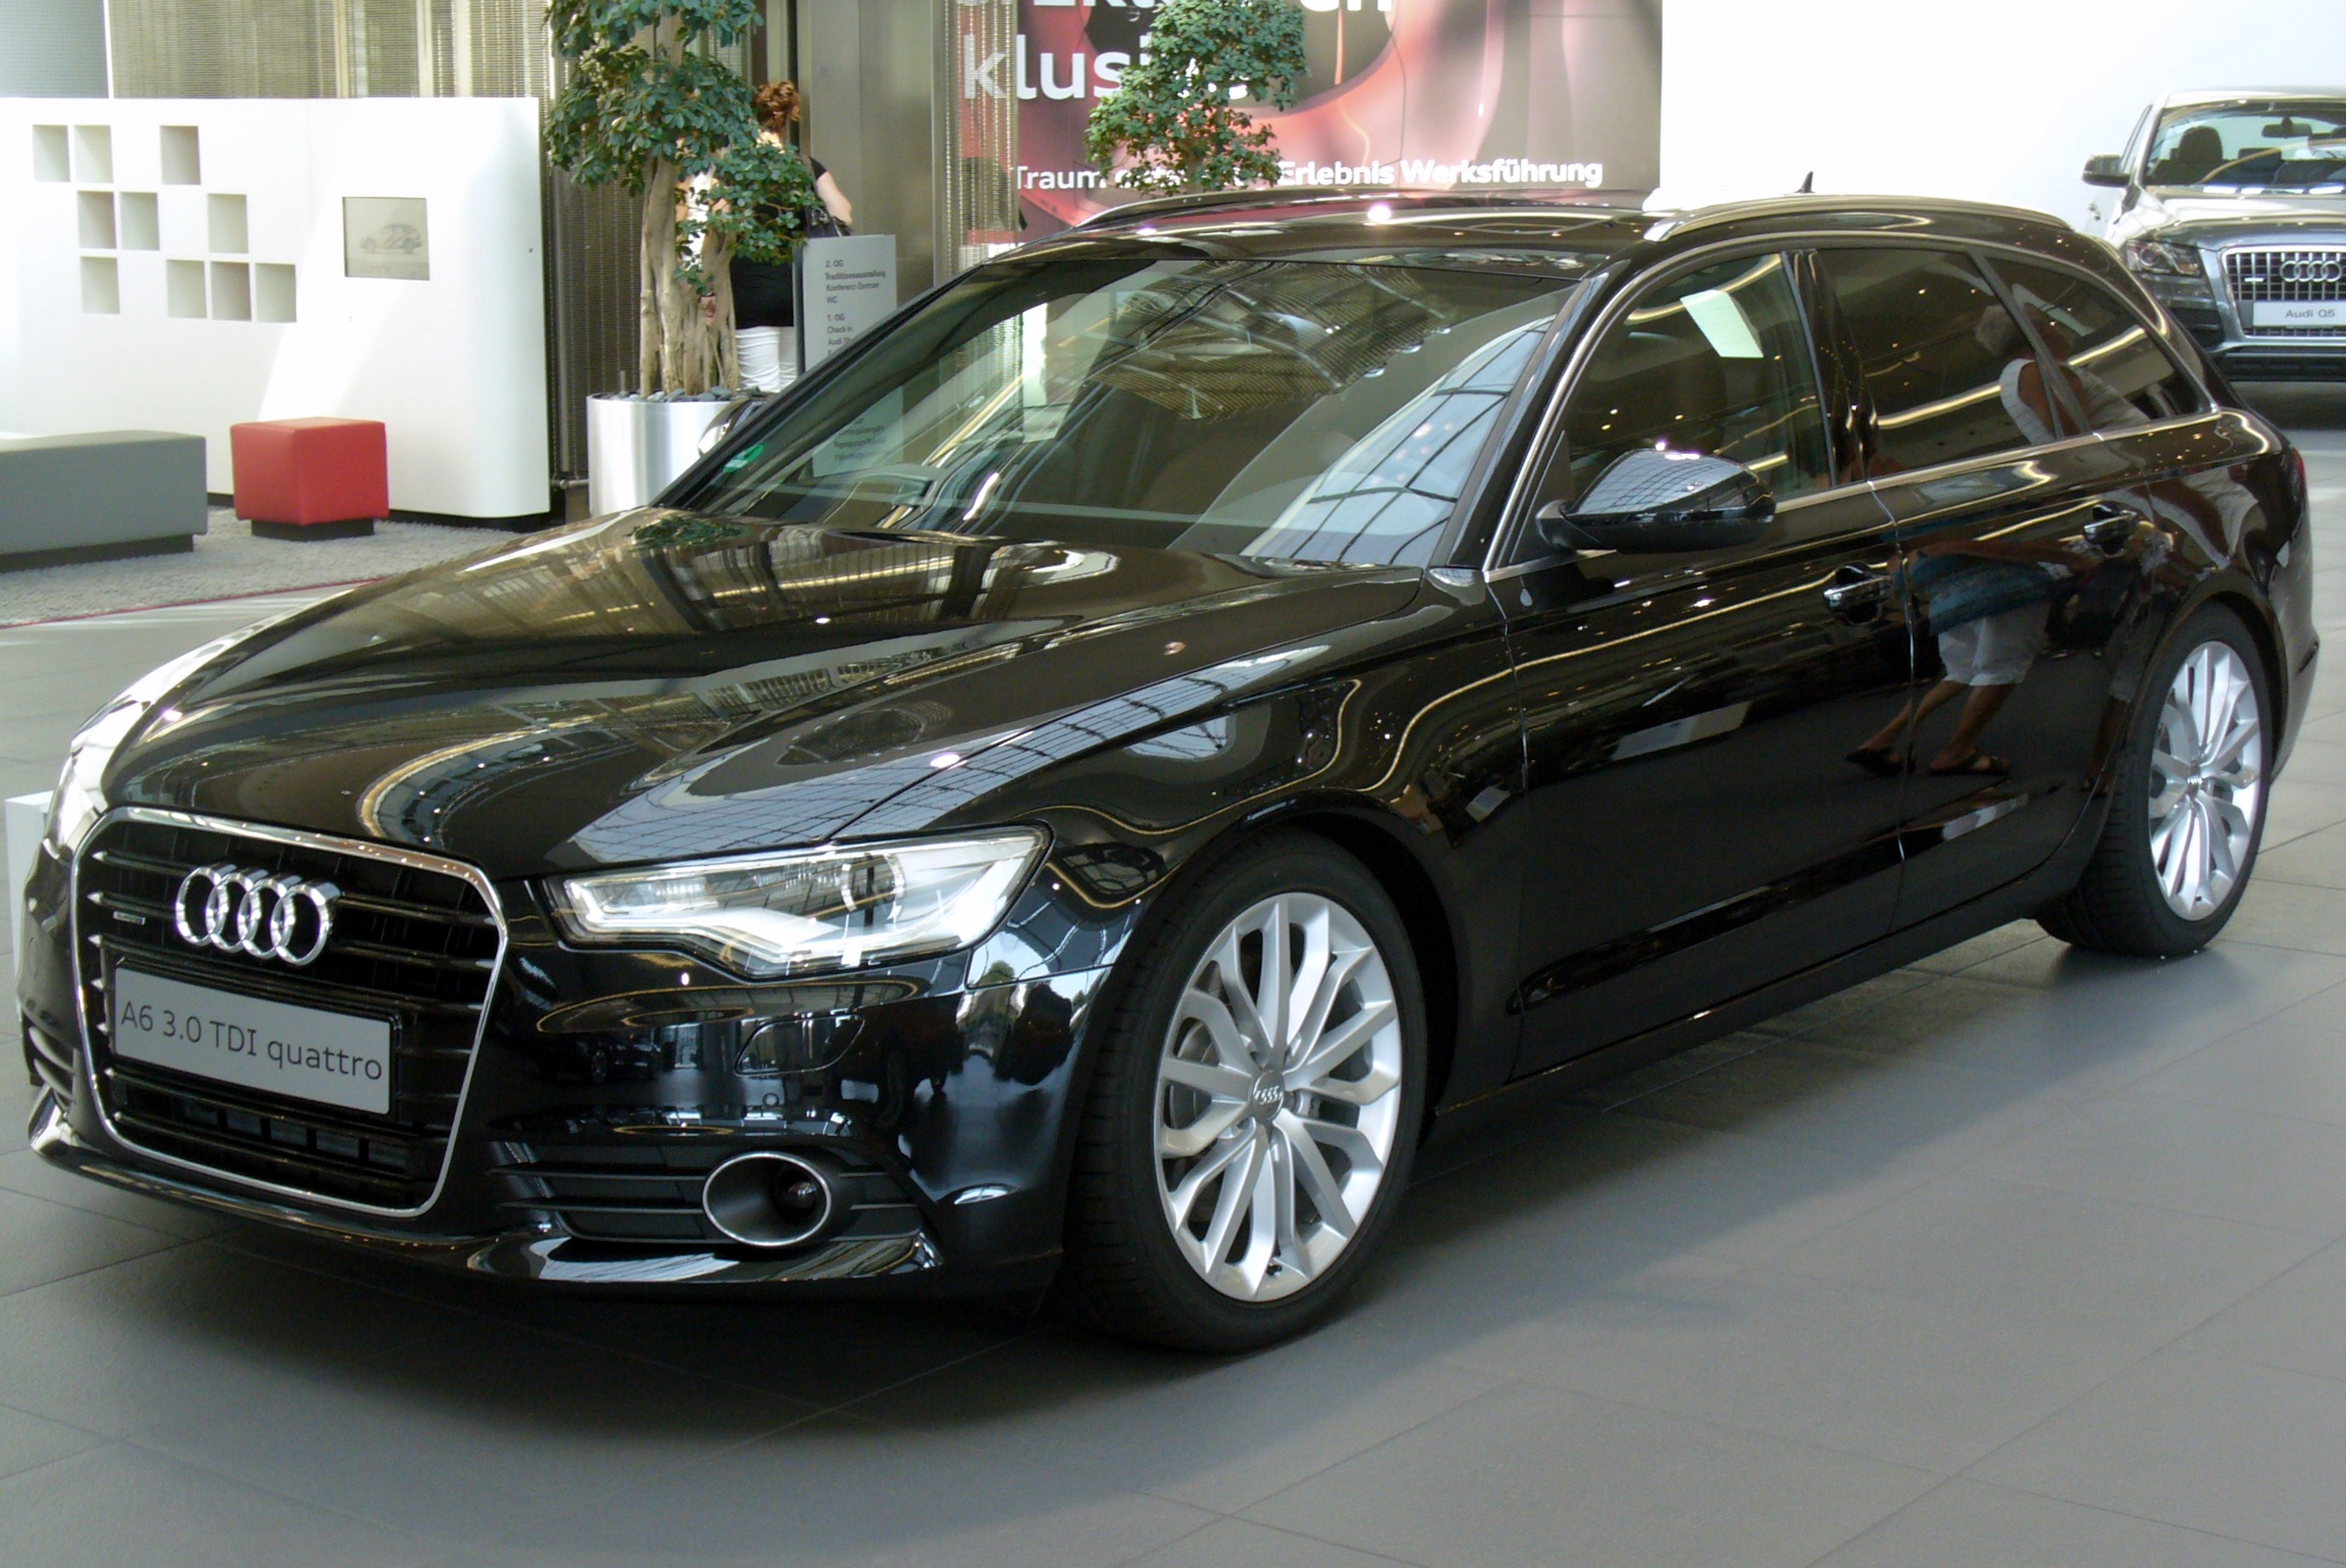 slika audi a6 avant 3 0 tdi quattro s tronic phantomschwarz jpg wikipedija prosta enciklopedija. Black Bedroom Furniture Sets. Home Design Ideas